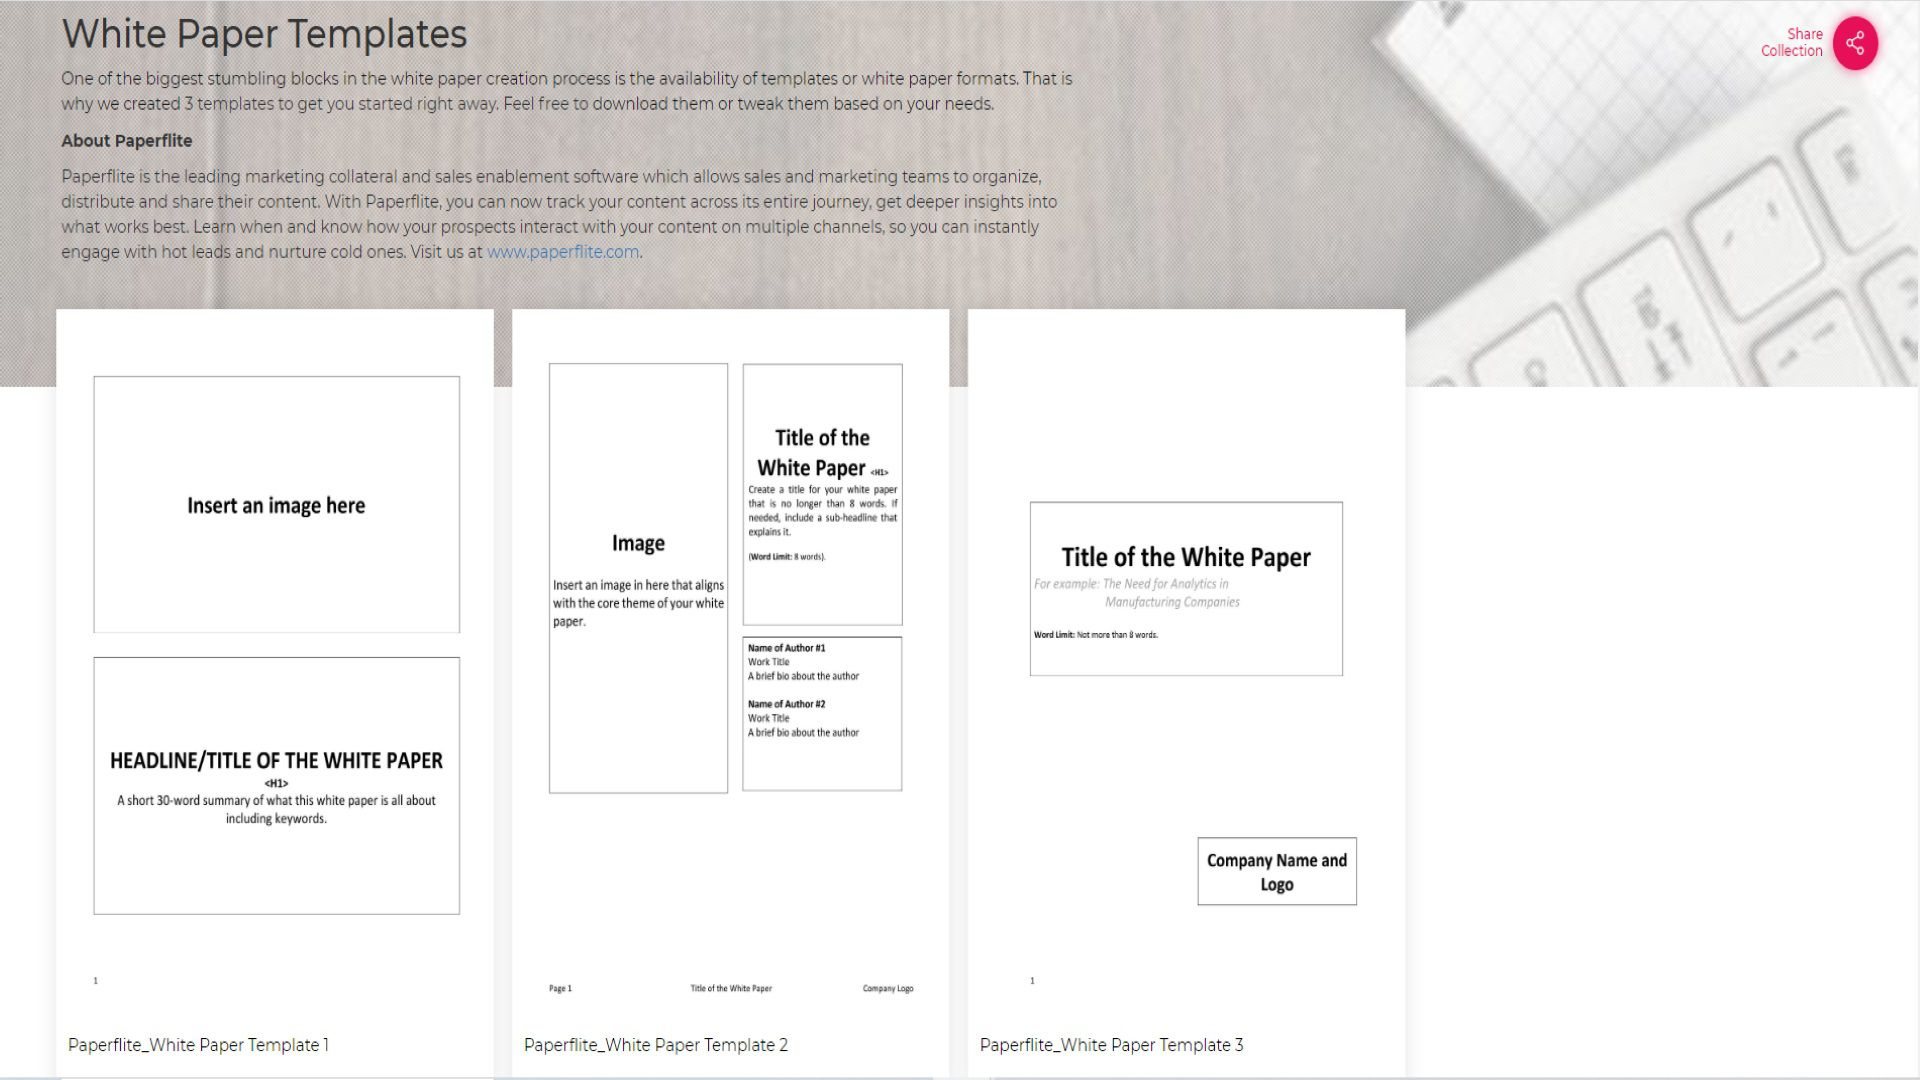 003 Staggering Free White Paper Template Example  Word 2016 Indesign MicrosoftFull